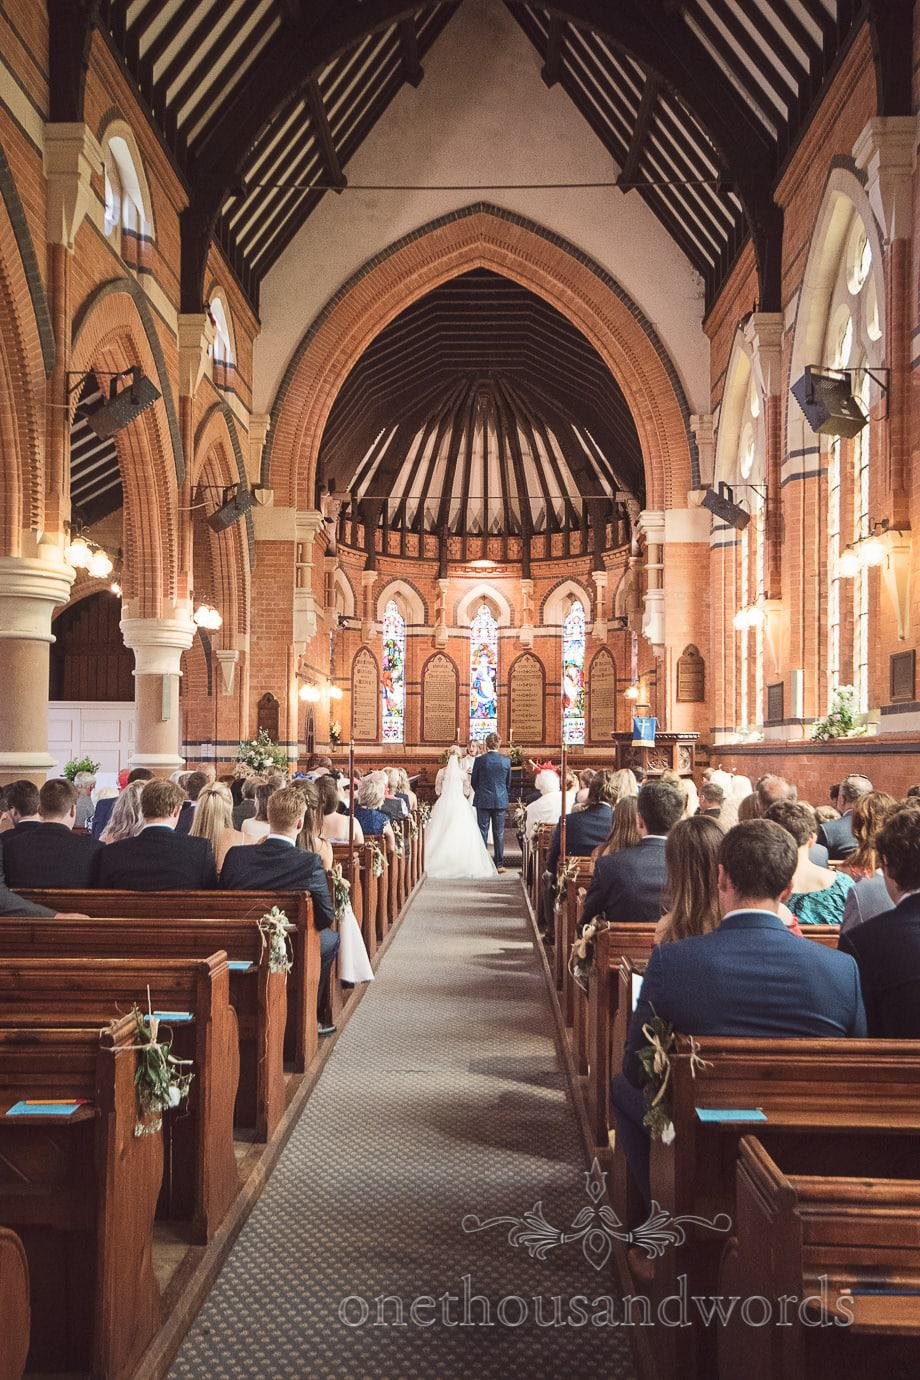 Wedding ceremony in beautiful English countryside church at Tur Langton